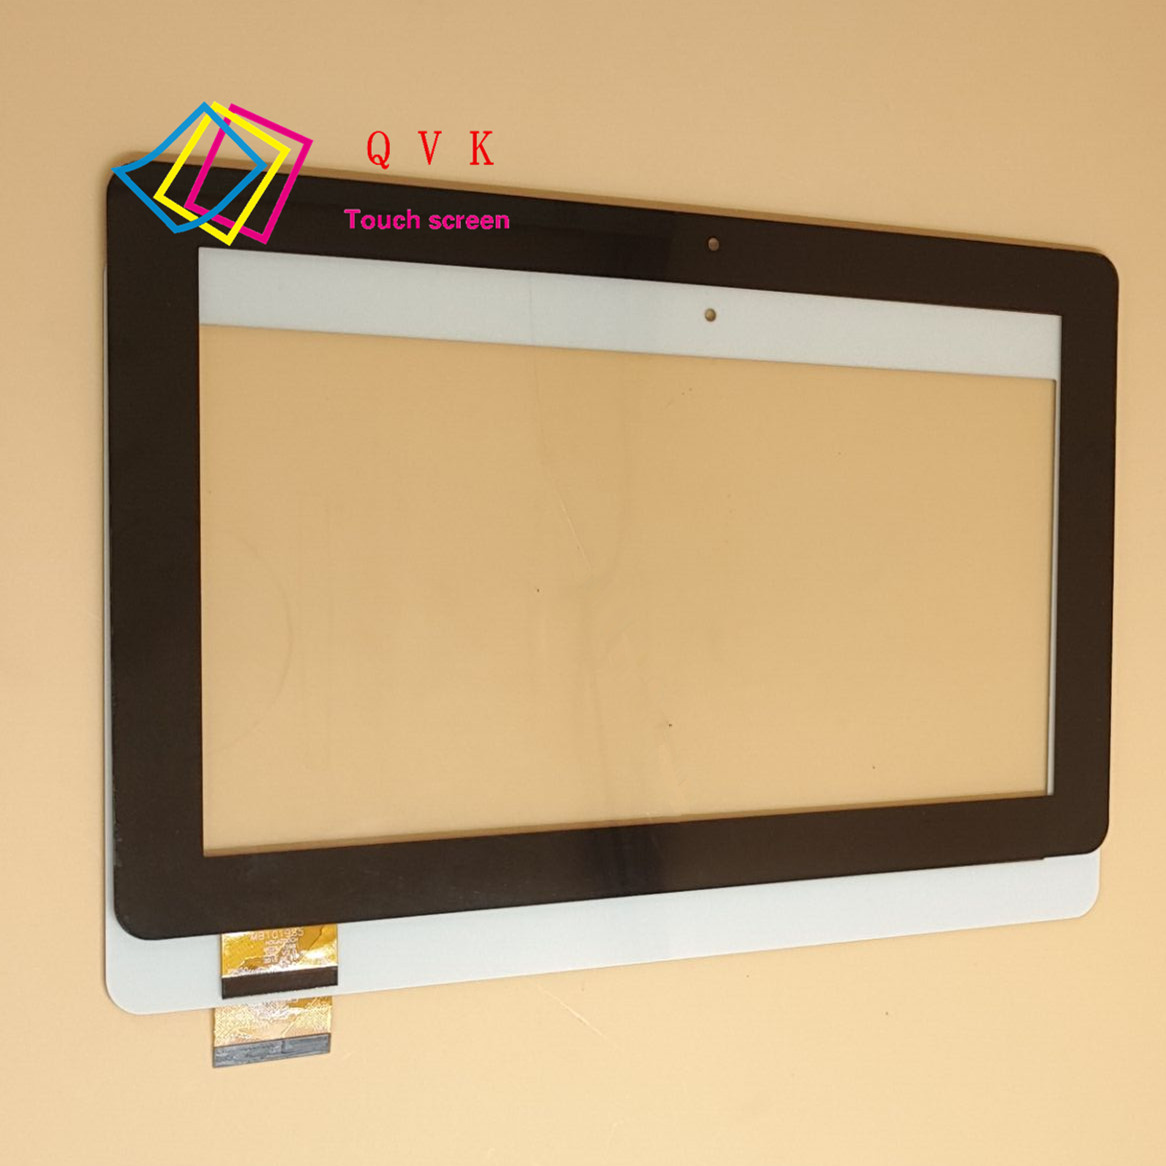 10.1inch MB1019S5 HOTATOUCH HC261159B1 FPC V2.0  Capacitive Touch Screen Panel Digitizer Glass Sensor Replacement